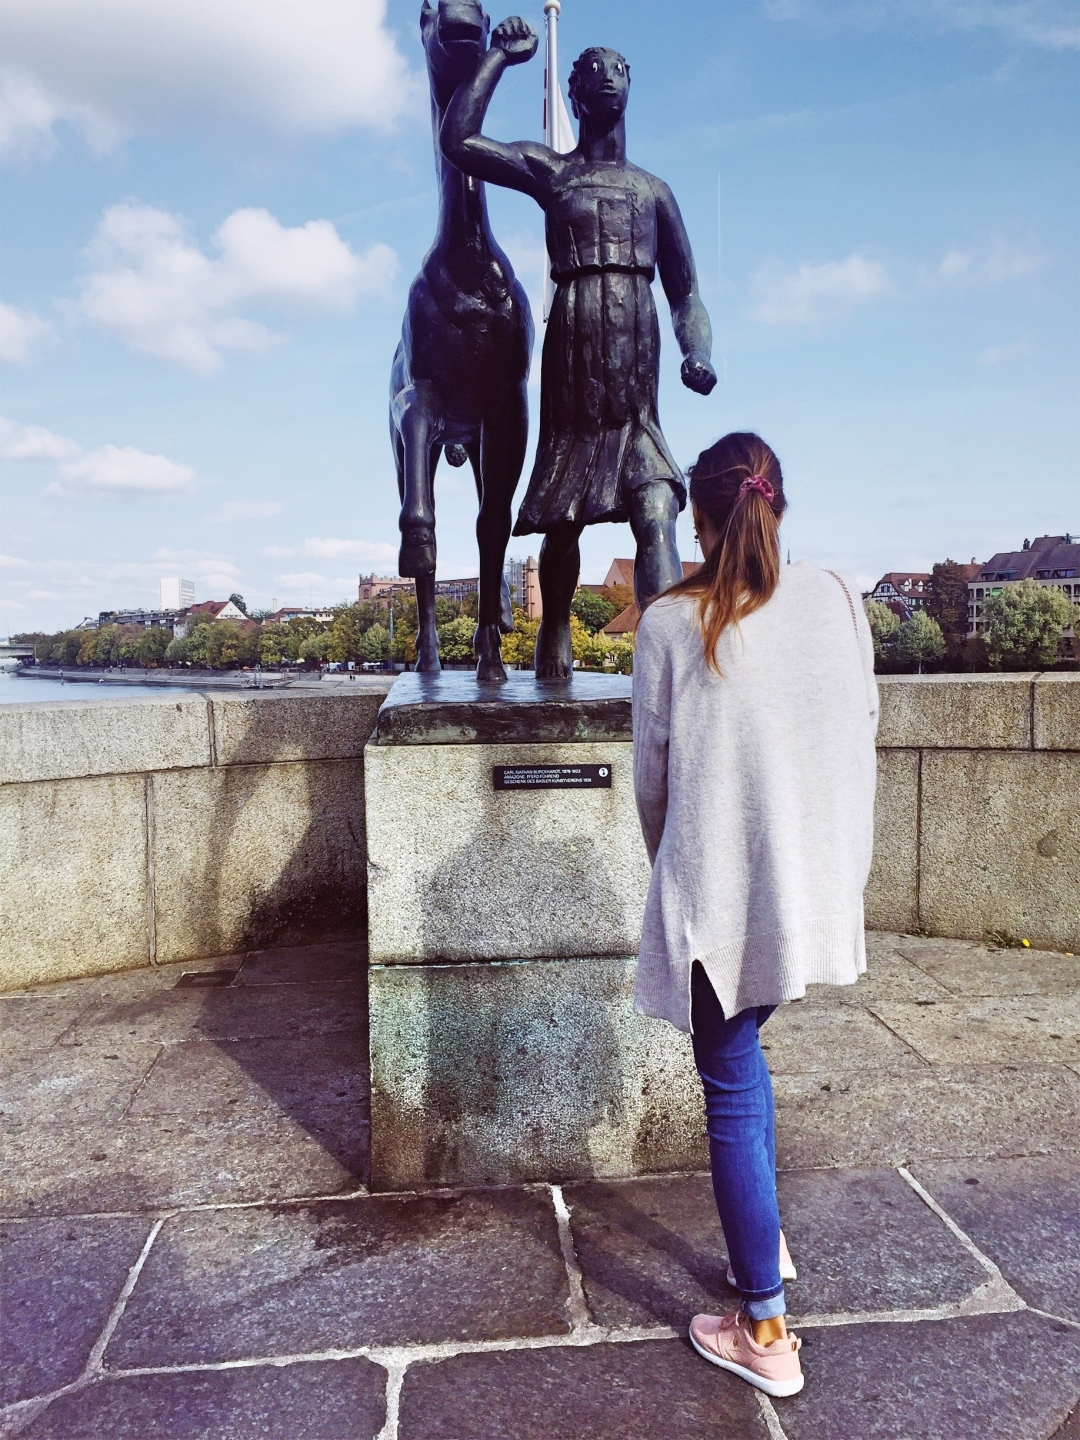 Rhine river Mittlere Brucke basel - statue amazon with a horse